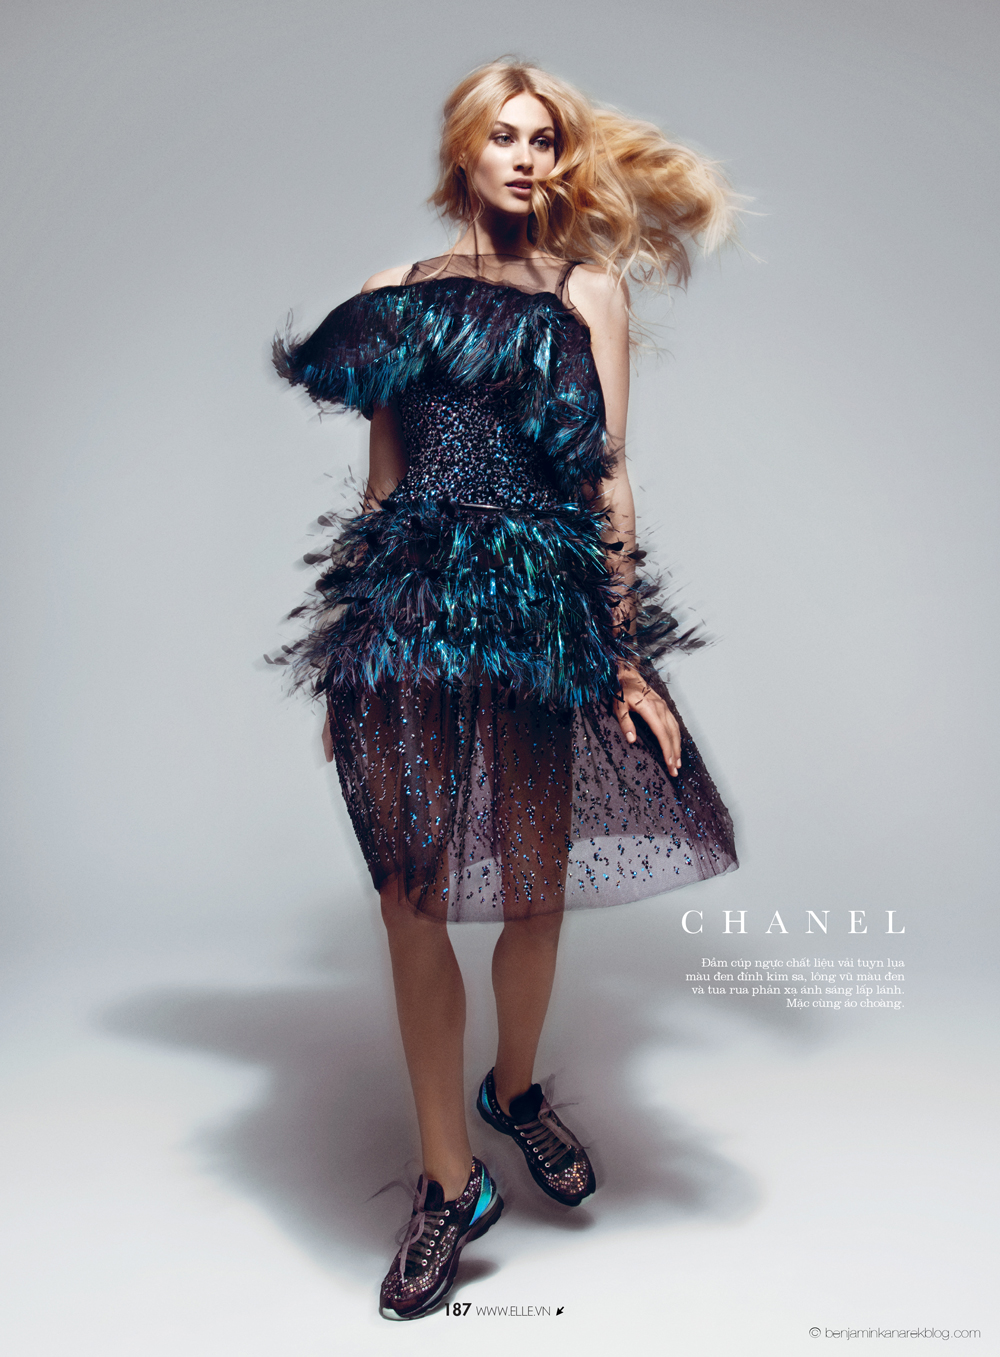 Dauphine McKee in Chanel Haute Couture © Benjamin Kanarek for ELLE Vietnam April 2014